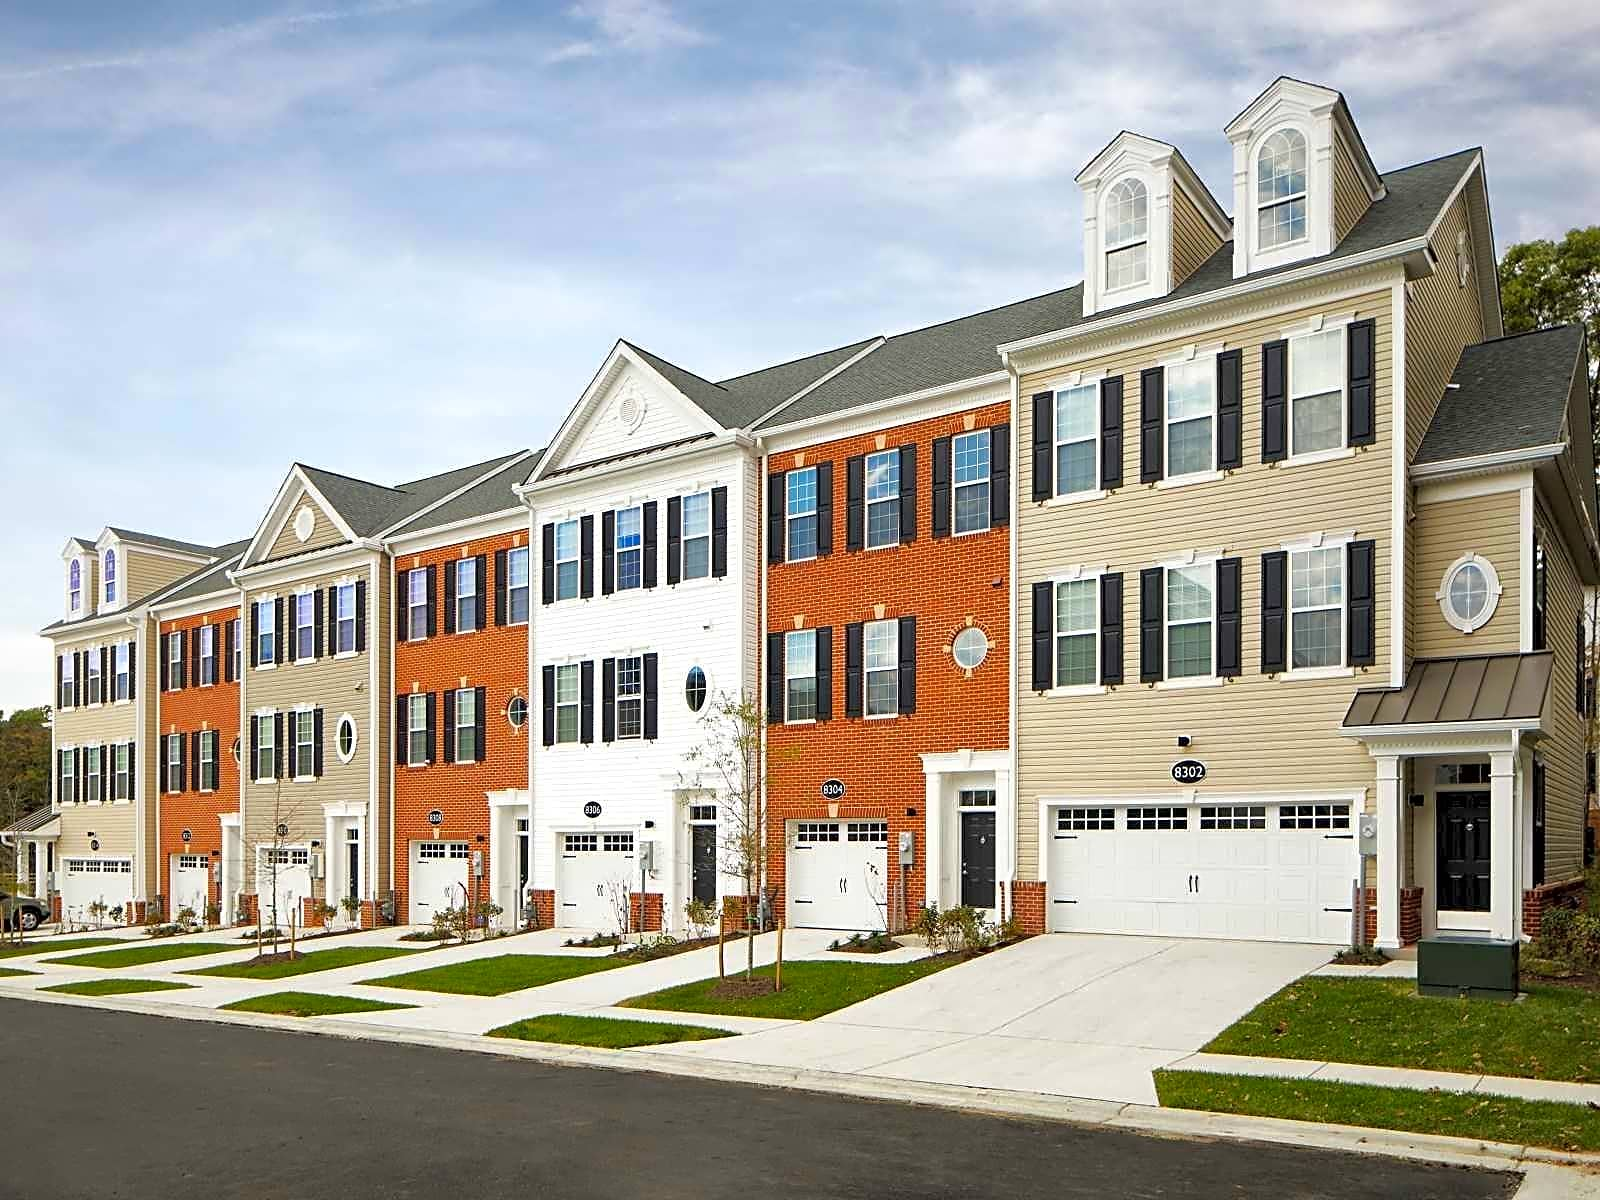 Creekstone Village Apartments Pasadena Md 21122